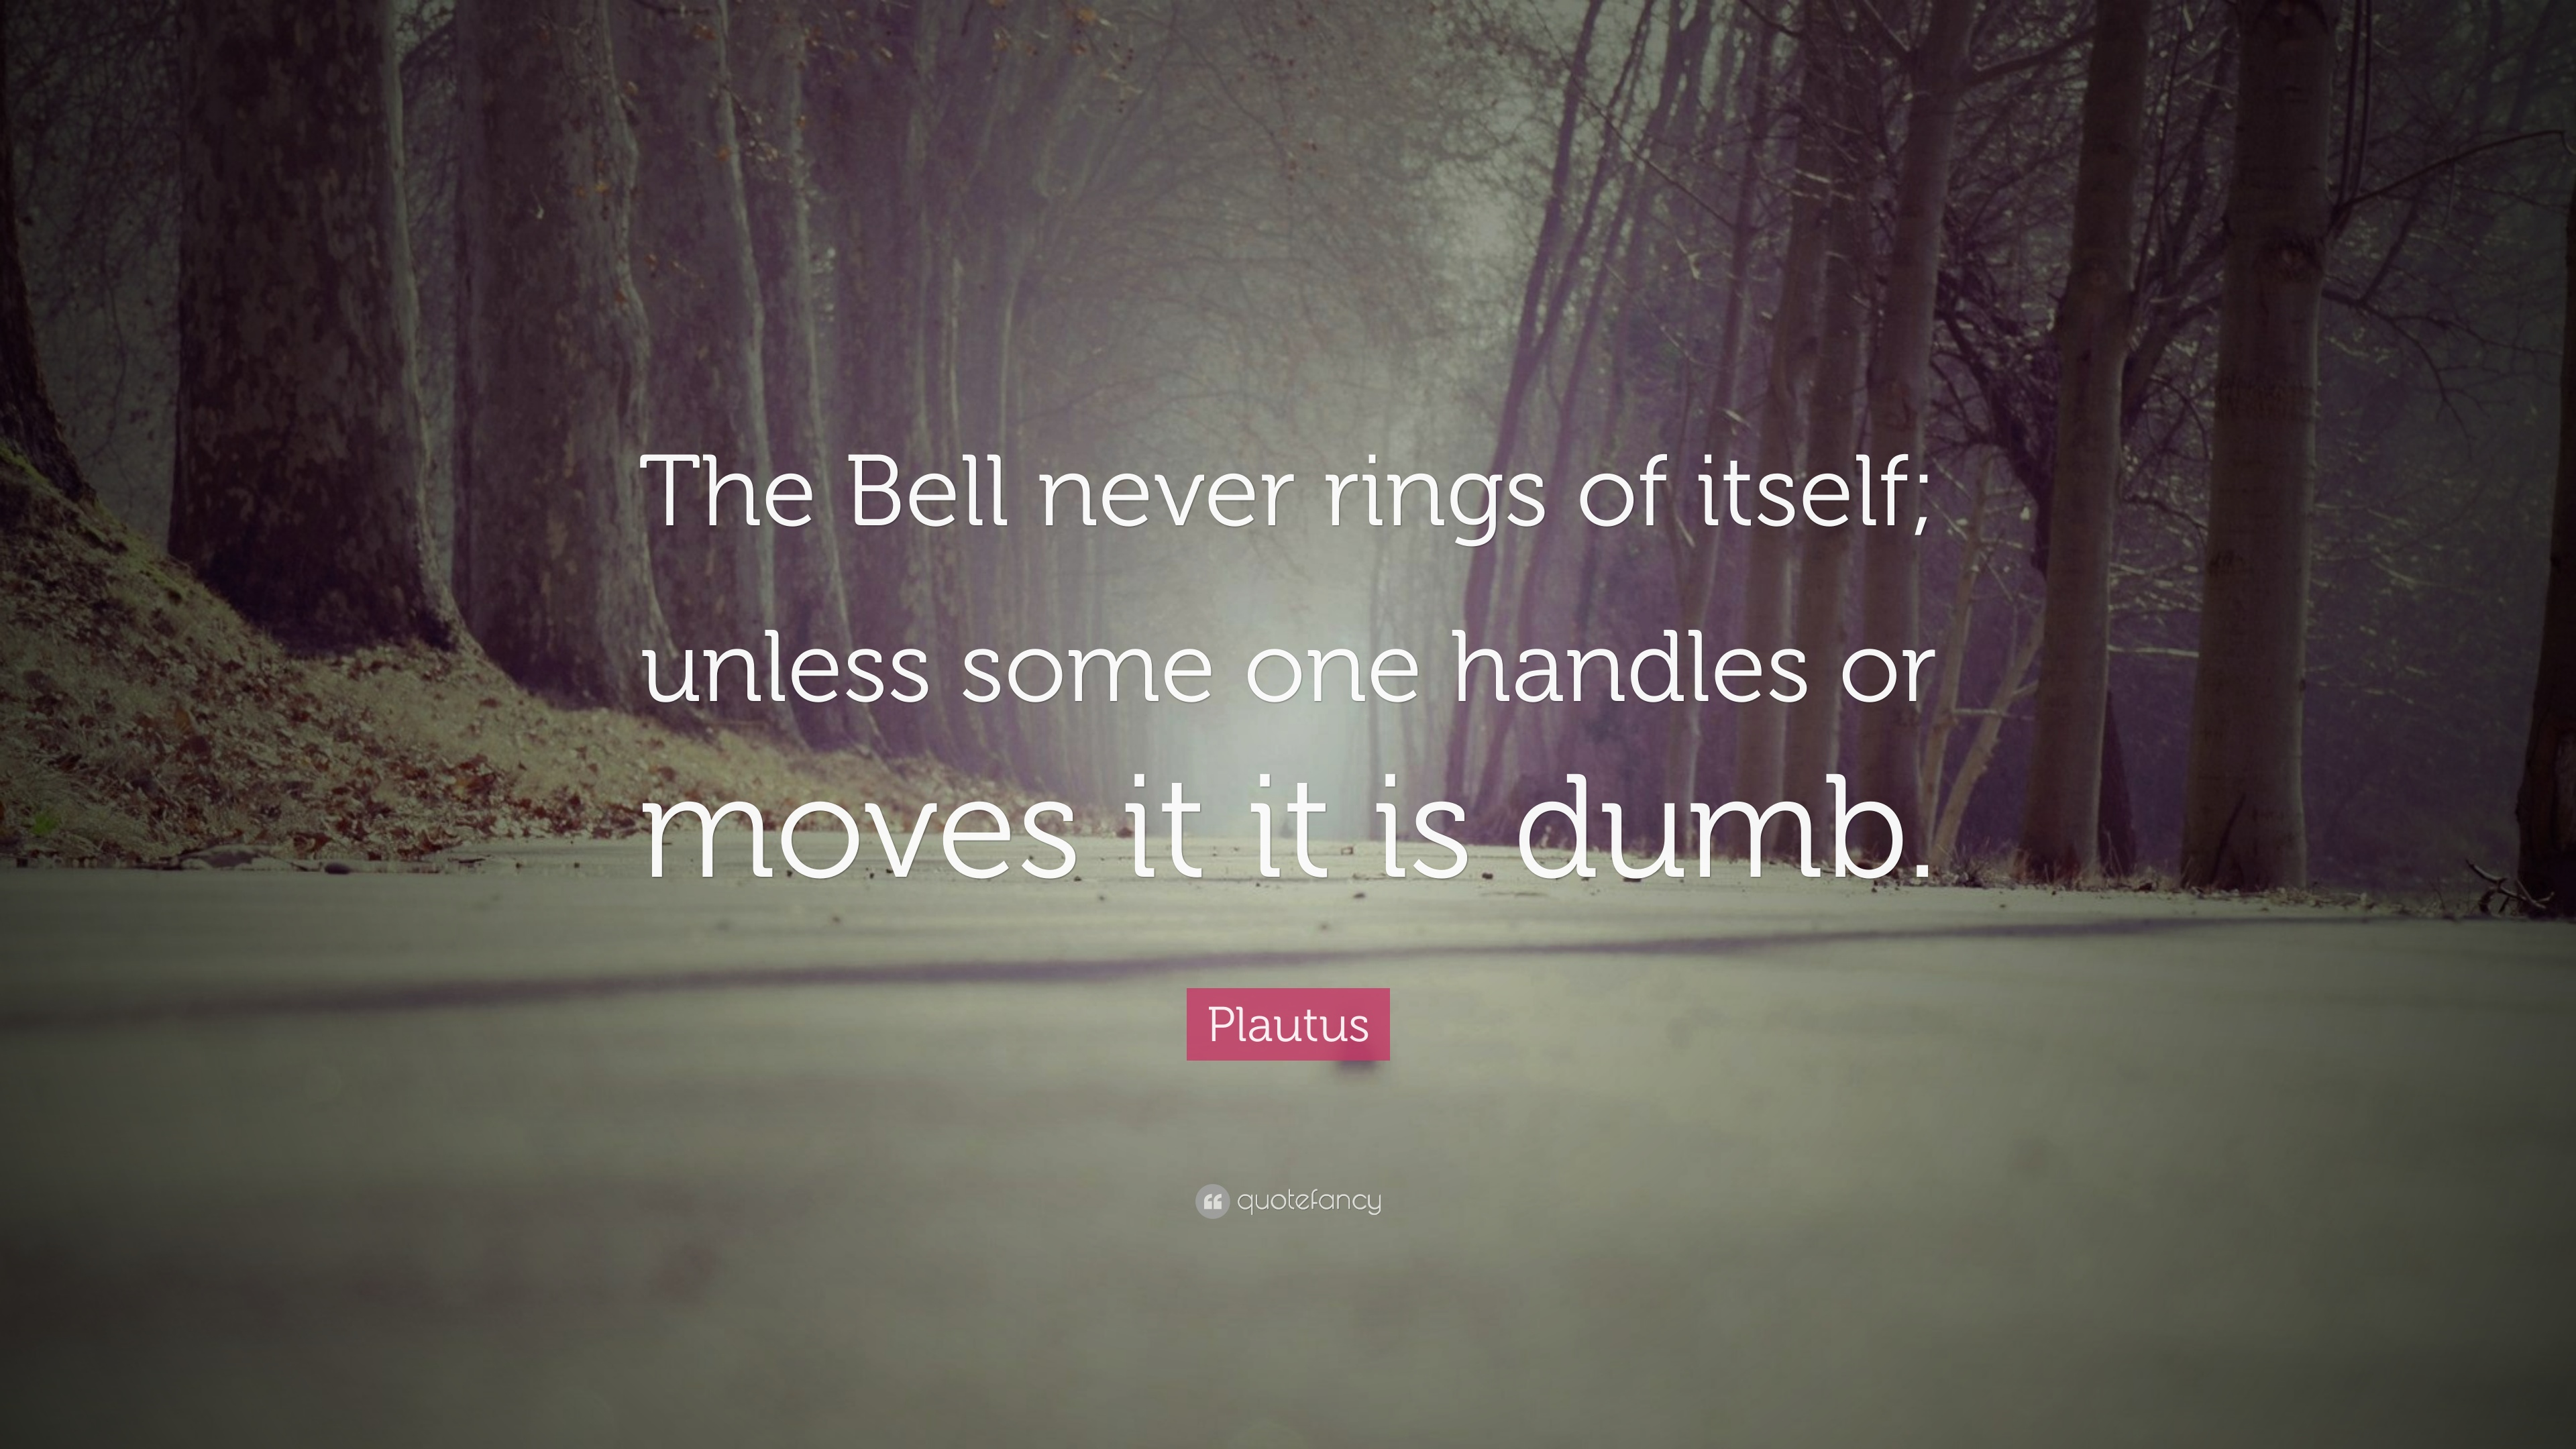 Plautus Quote The Bell Never Rings Of Itself Unless Some One Handles Or Moves It It Is Dumb 7 Wallpapers Quotefancy